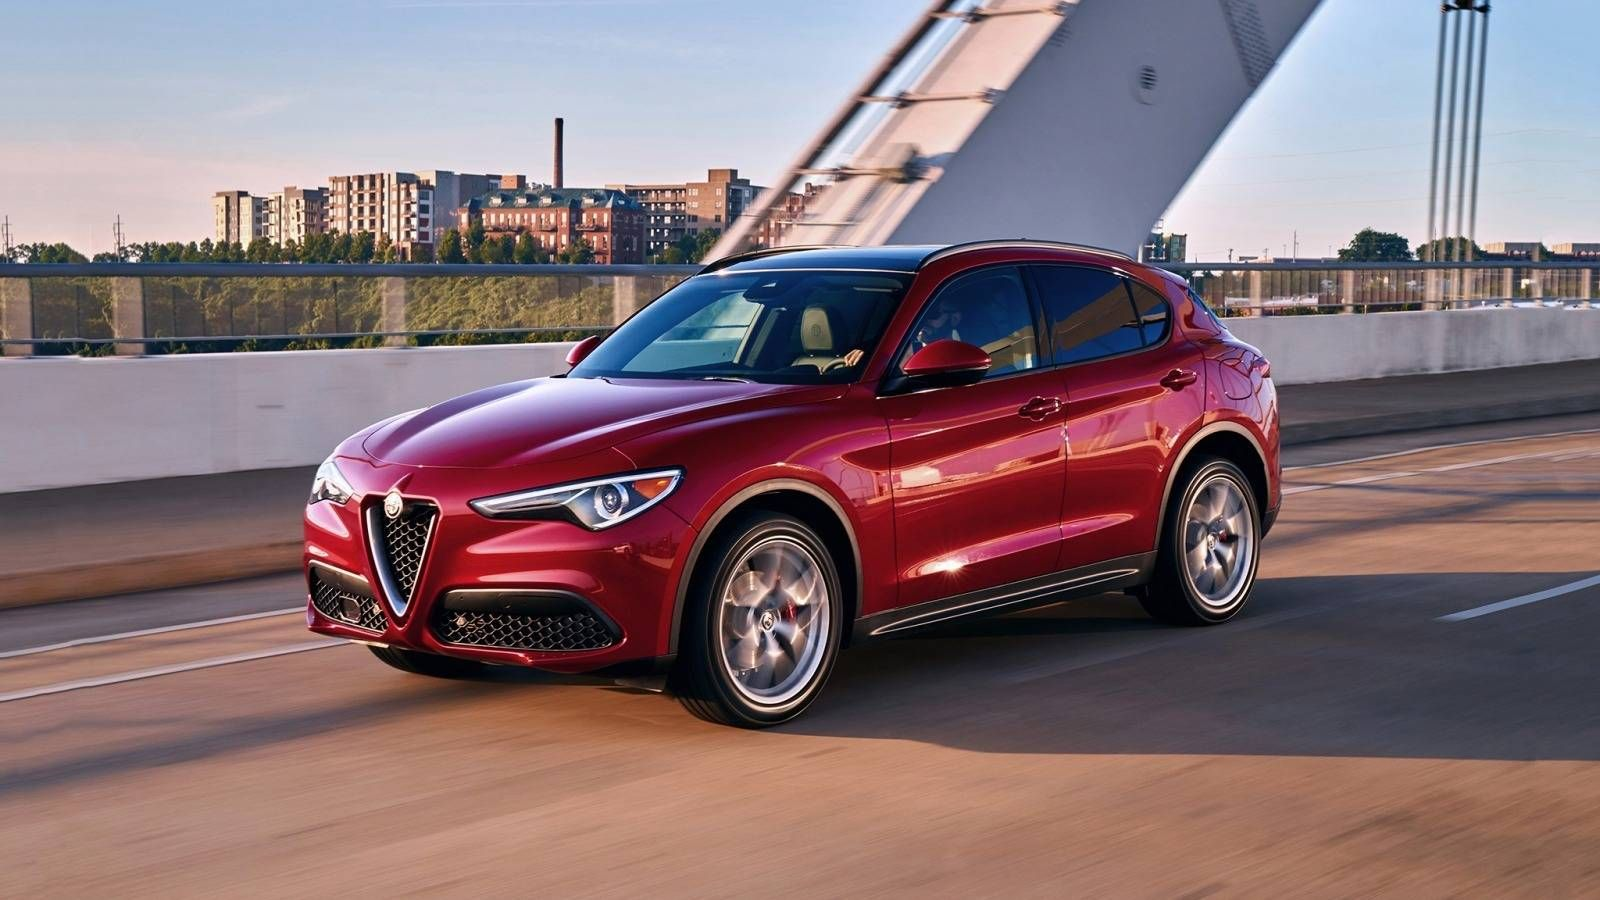 2019 Alfa Romeo Stelvio Review The Stelvio Is Long On Personality But Practicality Isn T Its Strong Suit Alfa Romeo Stelvio Alfa Romeo Giulietta Alfa Romeo